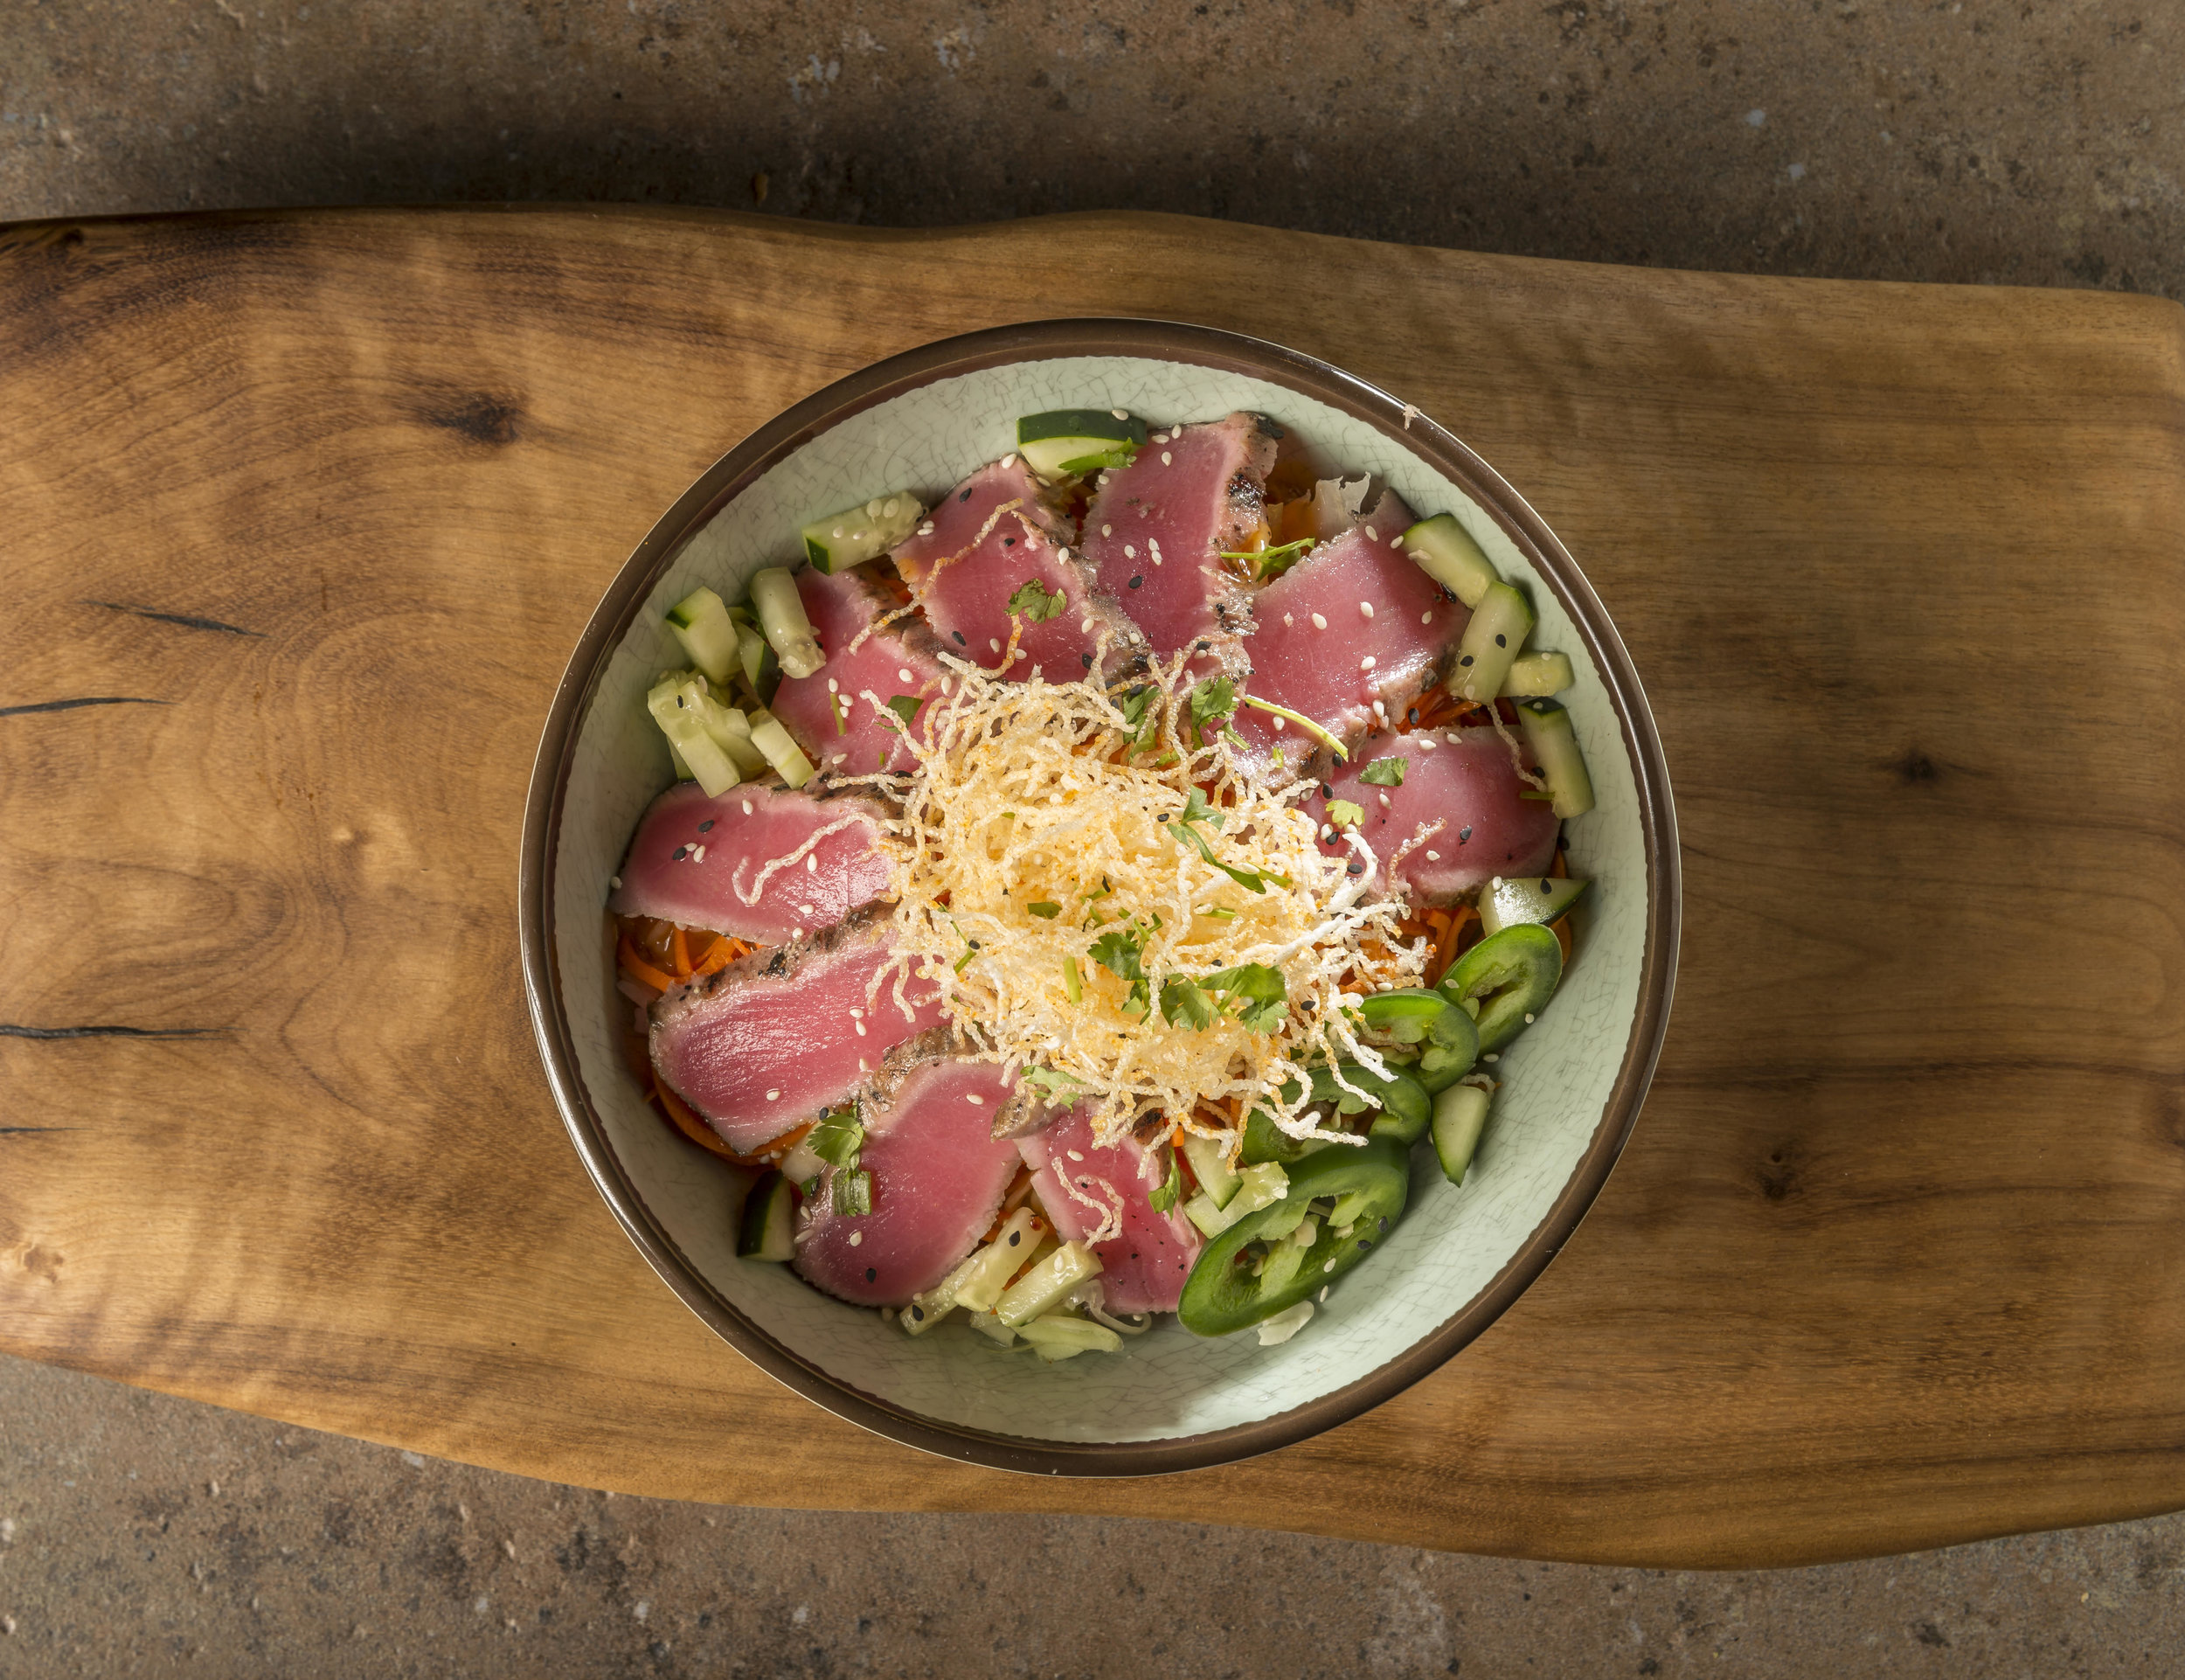 Seared Ahi Bowl - Seared Ahi tuna, cabbage, carrot, cucumber, jalapeño, lime, and crunchy noodles with house-made spicy sesame dressing$12.49